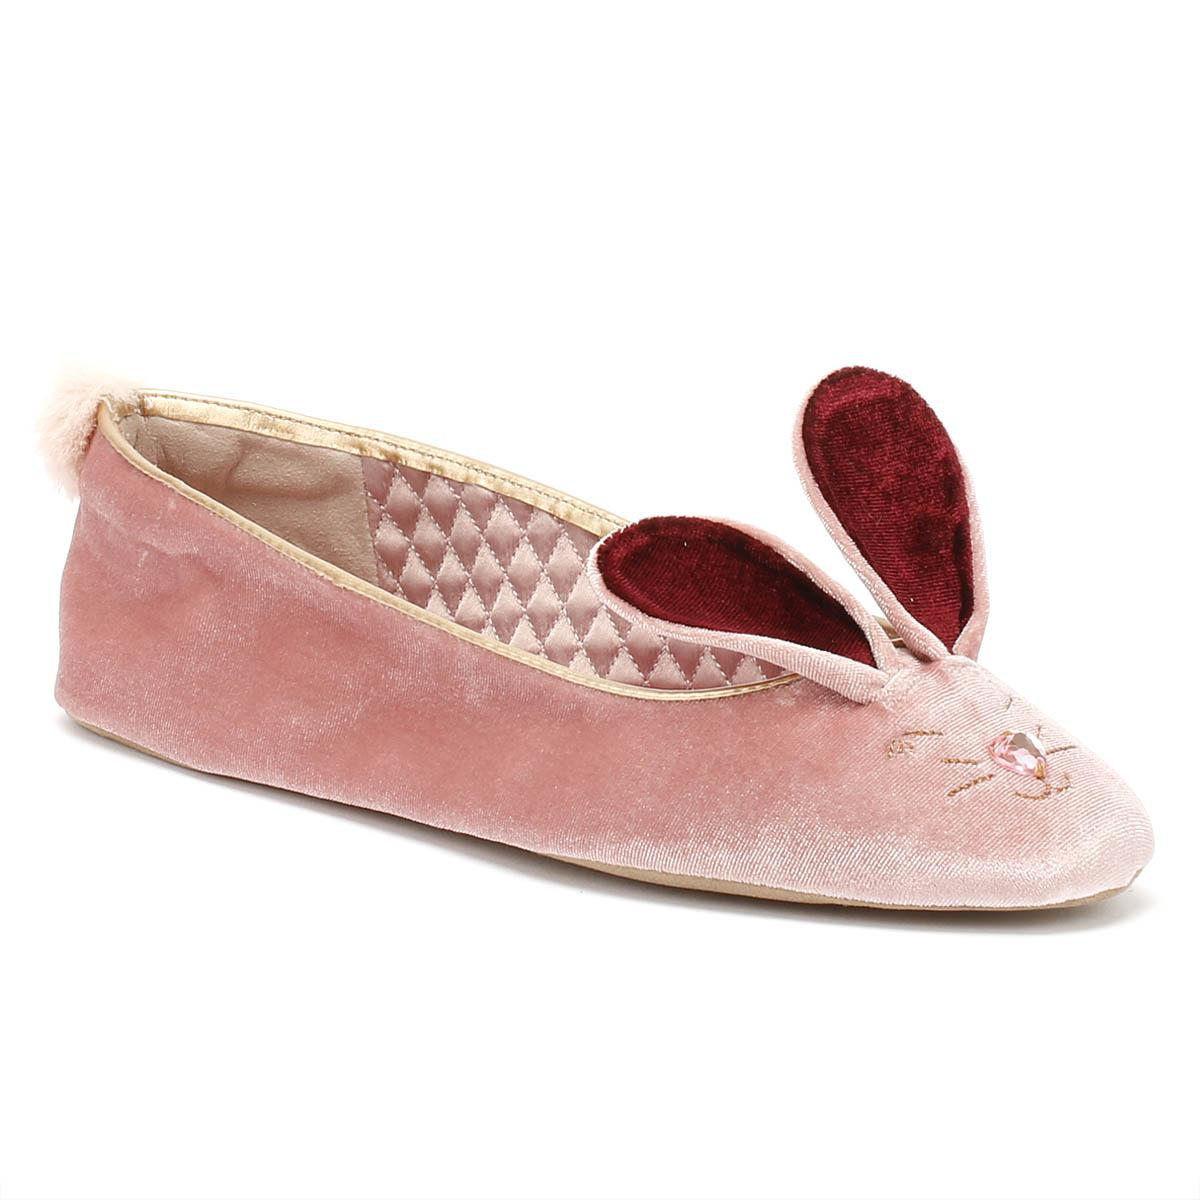 814654e53fe672 Lyst - Ted Baker Bhunni Womens Rose Slippers in Pink